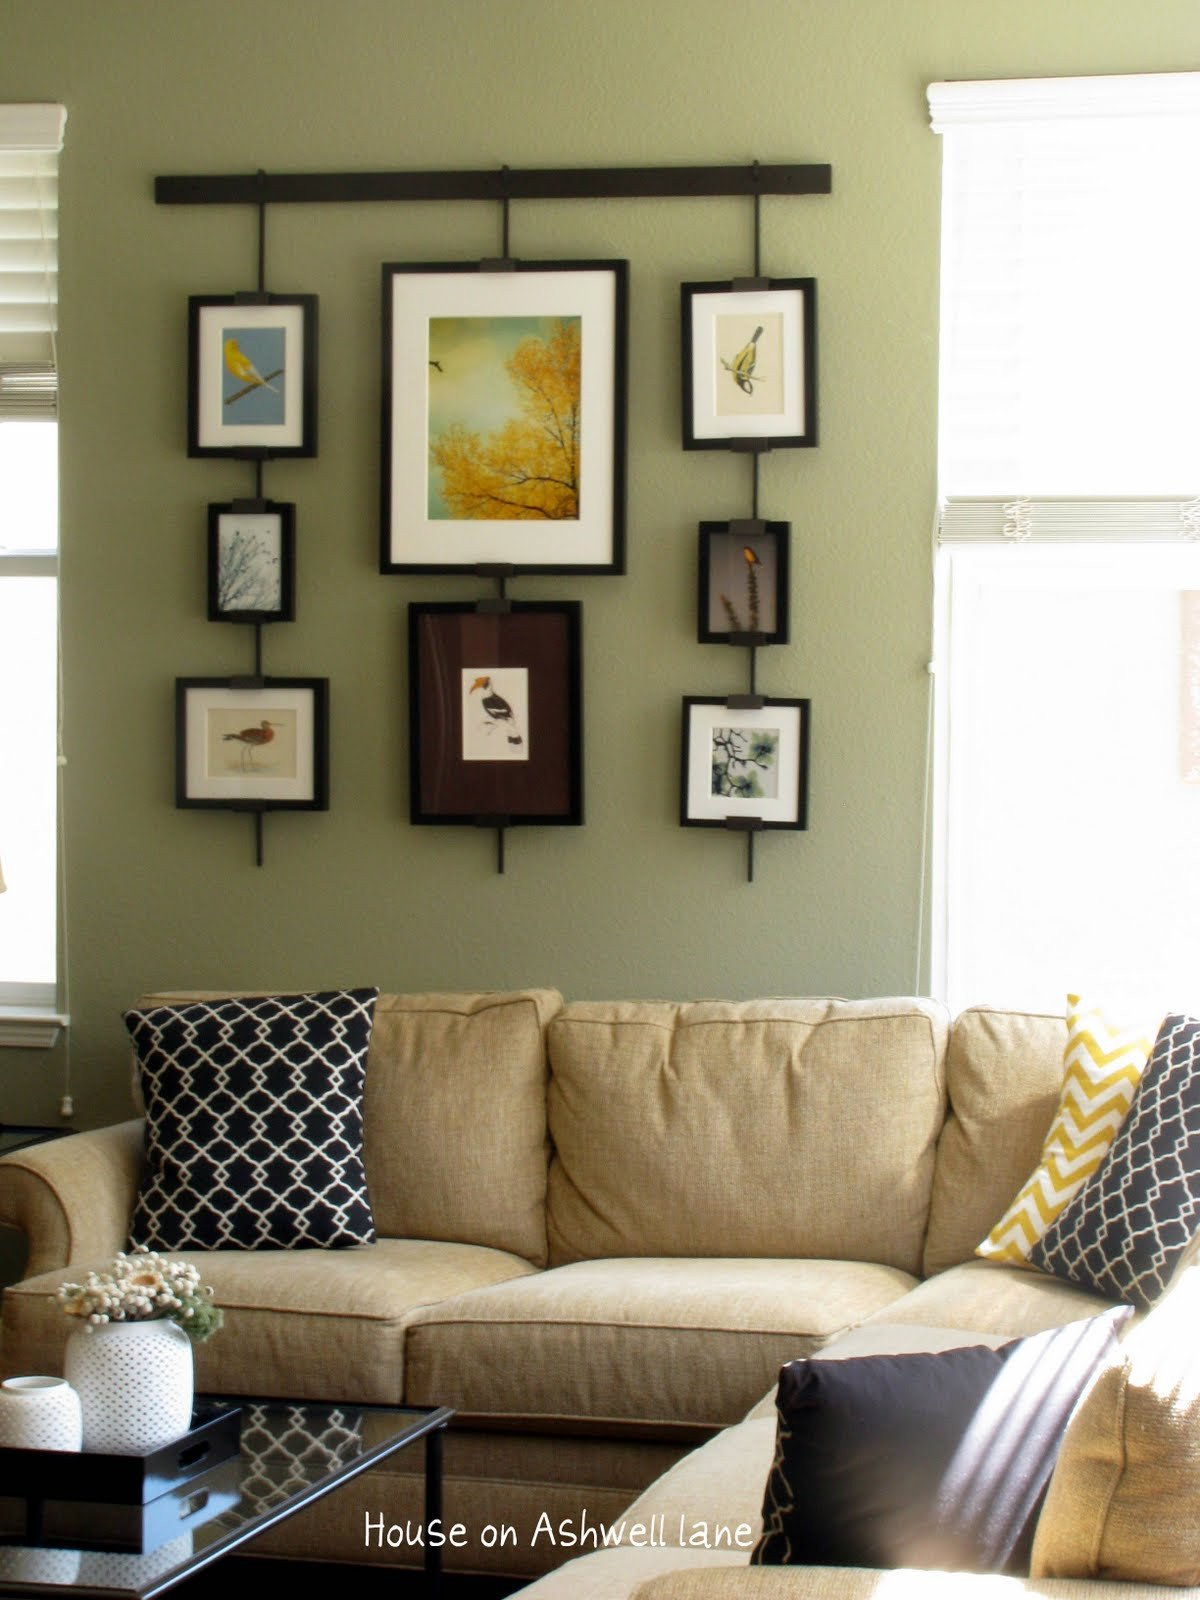 Family Room Wall Decor Ideas Lovely House On ashwell Lane Family Room Art Gallery Wall